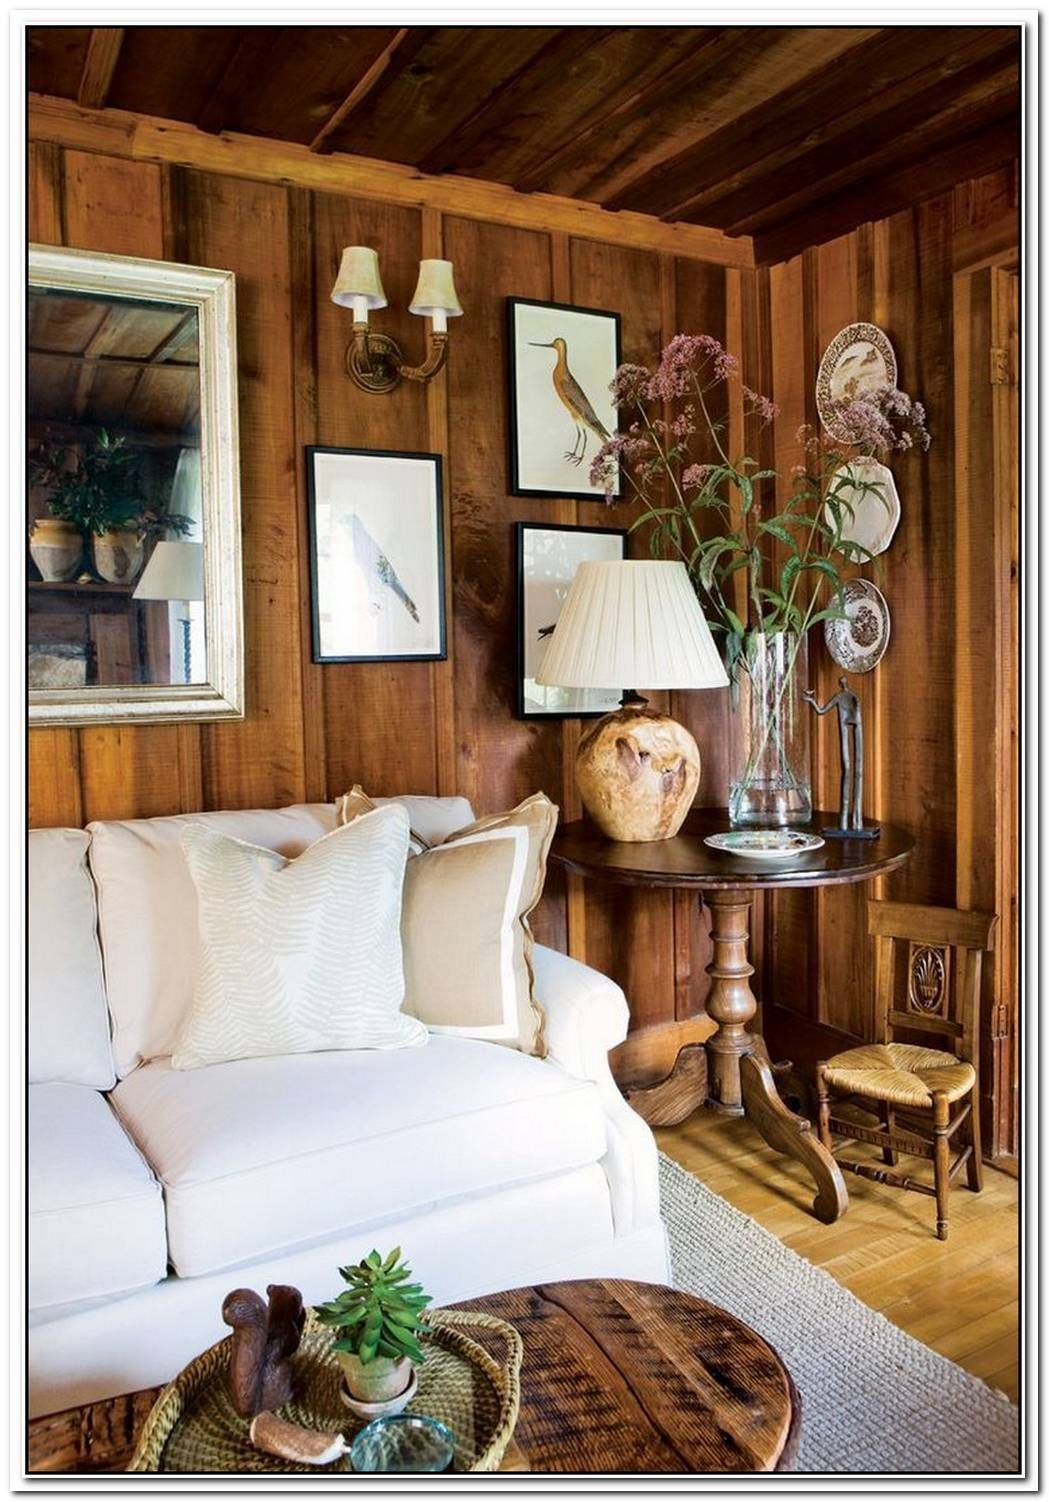 10 Cozy Ways To Decorate With Wood Wall Planks In 2020 Wood